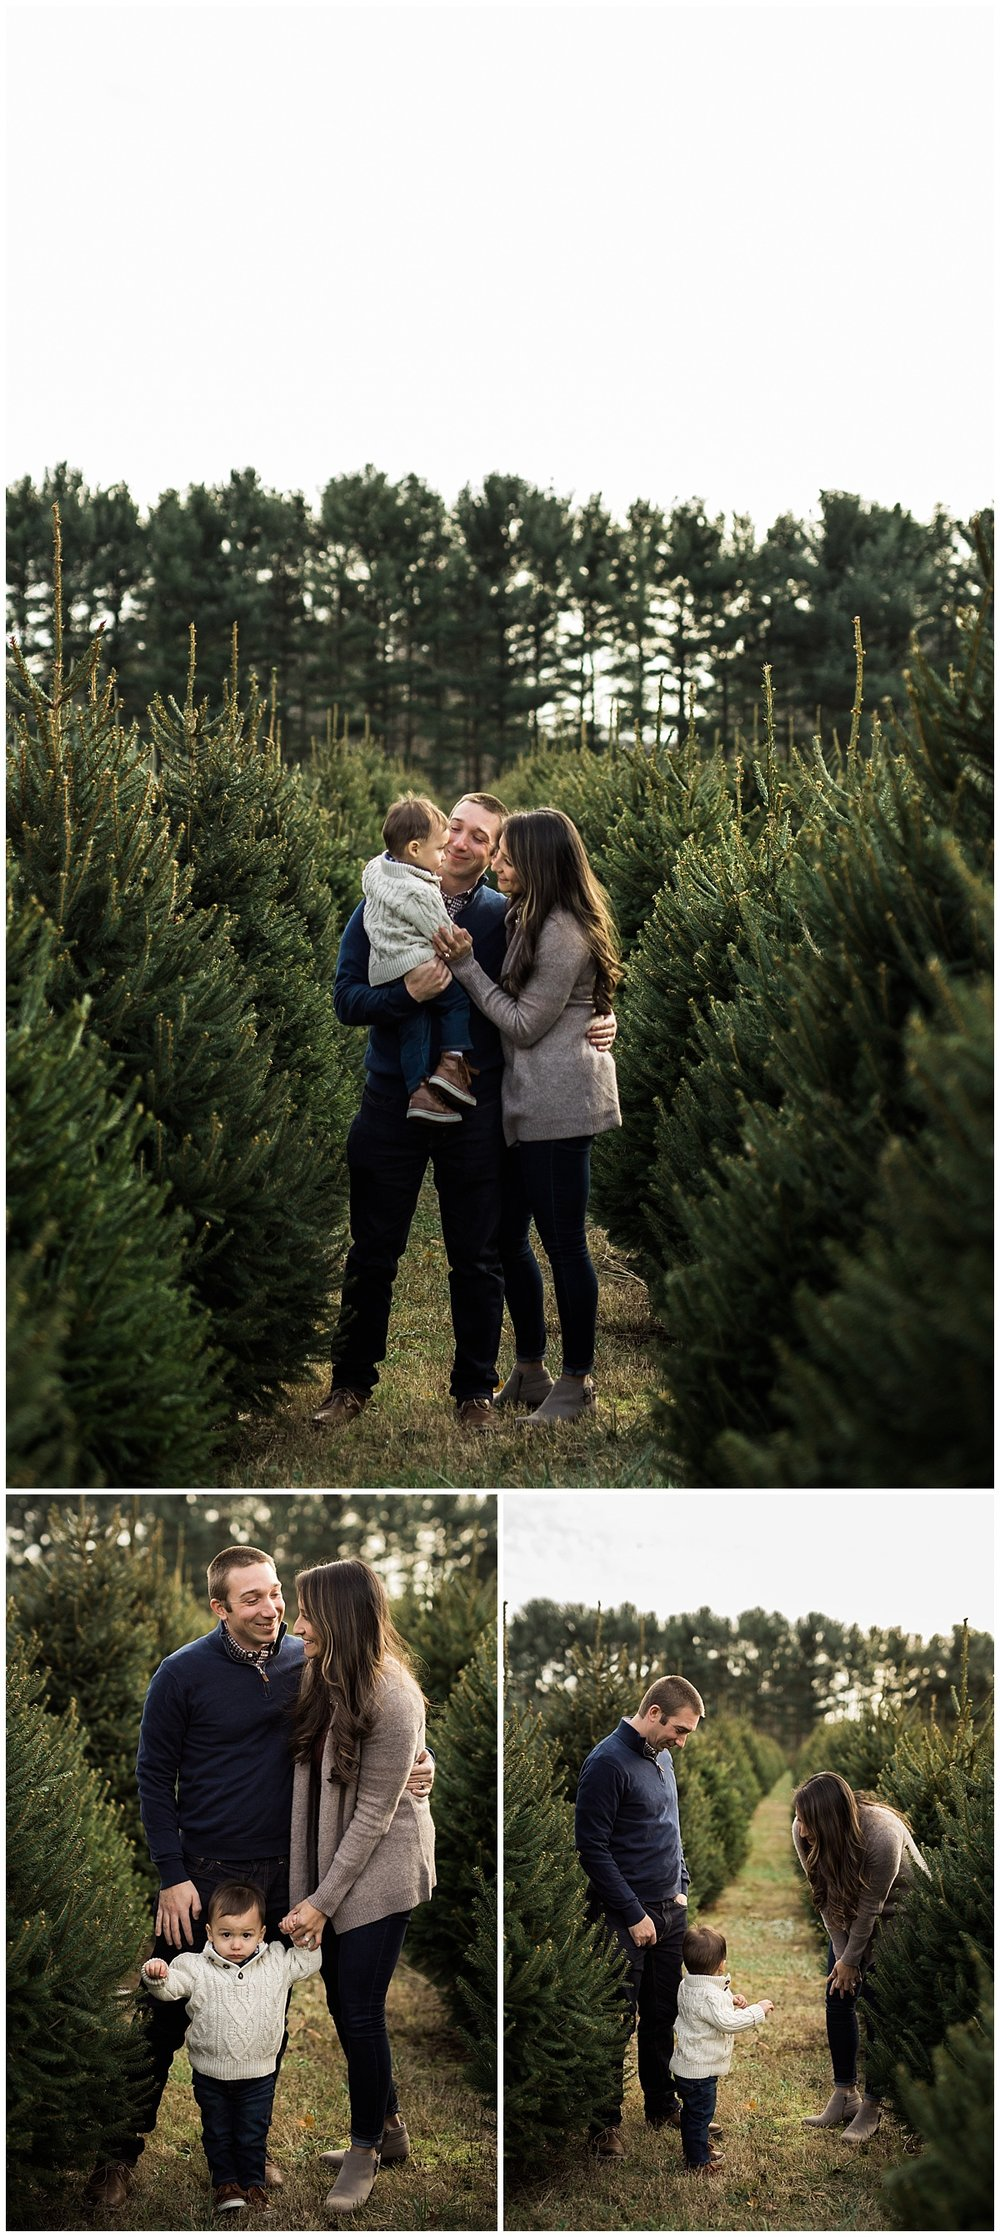 holiday family pictures at sugar pines farm | cleveland, OH photographer